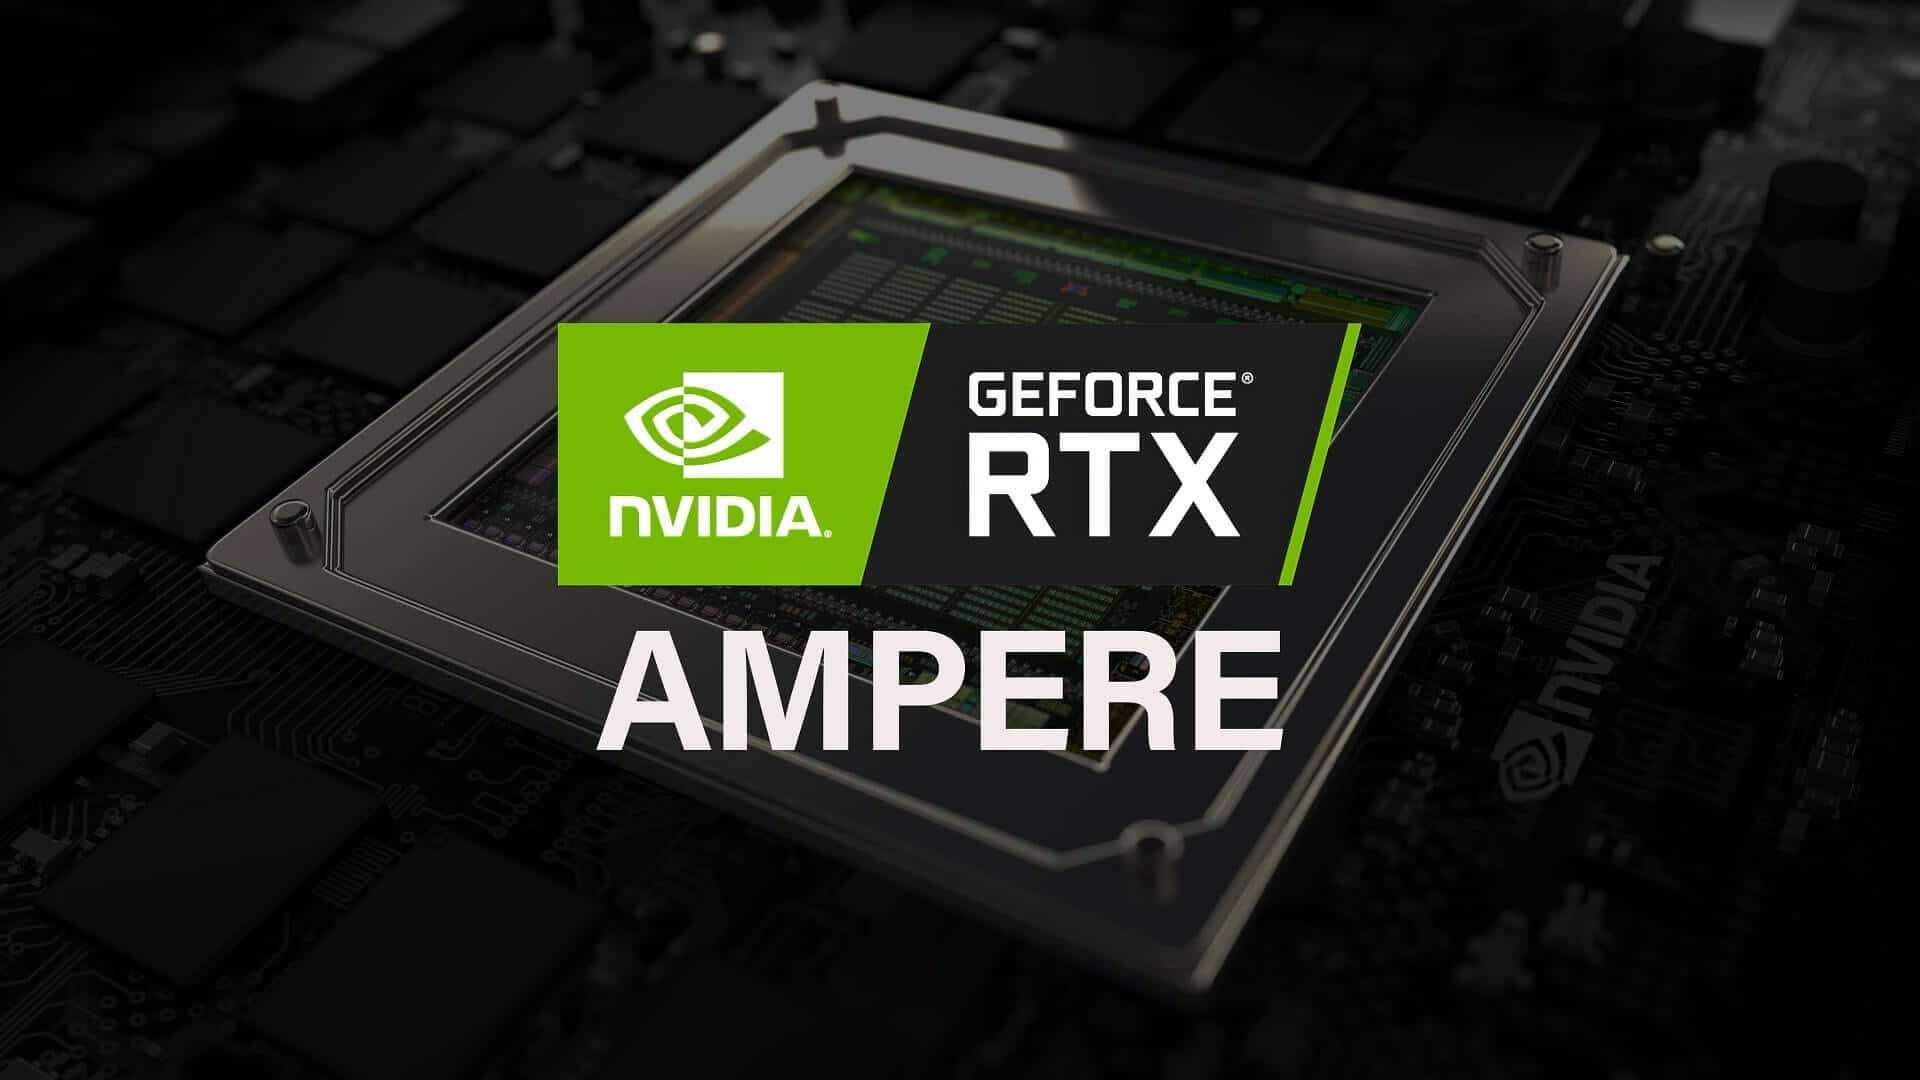 Nvidia's RTX Ampere details leaked: powerful and expensive